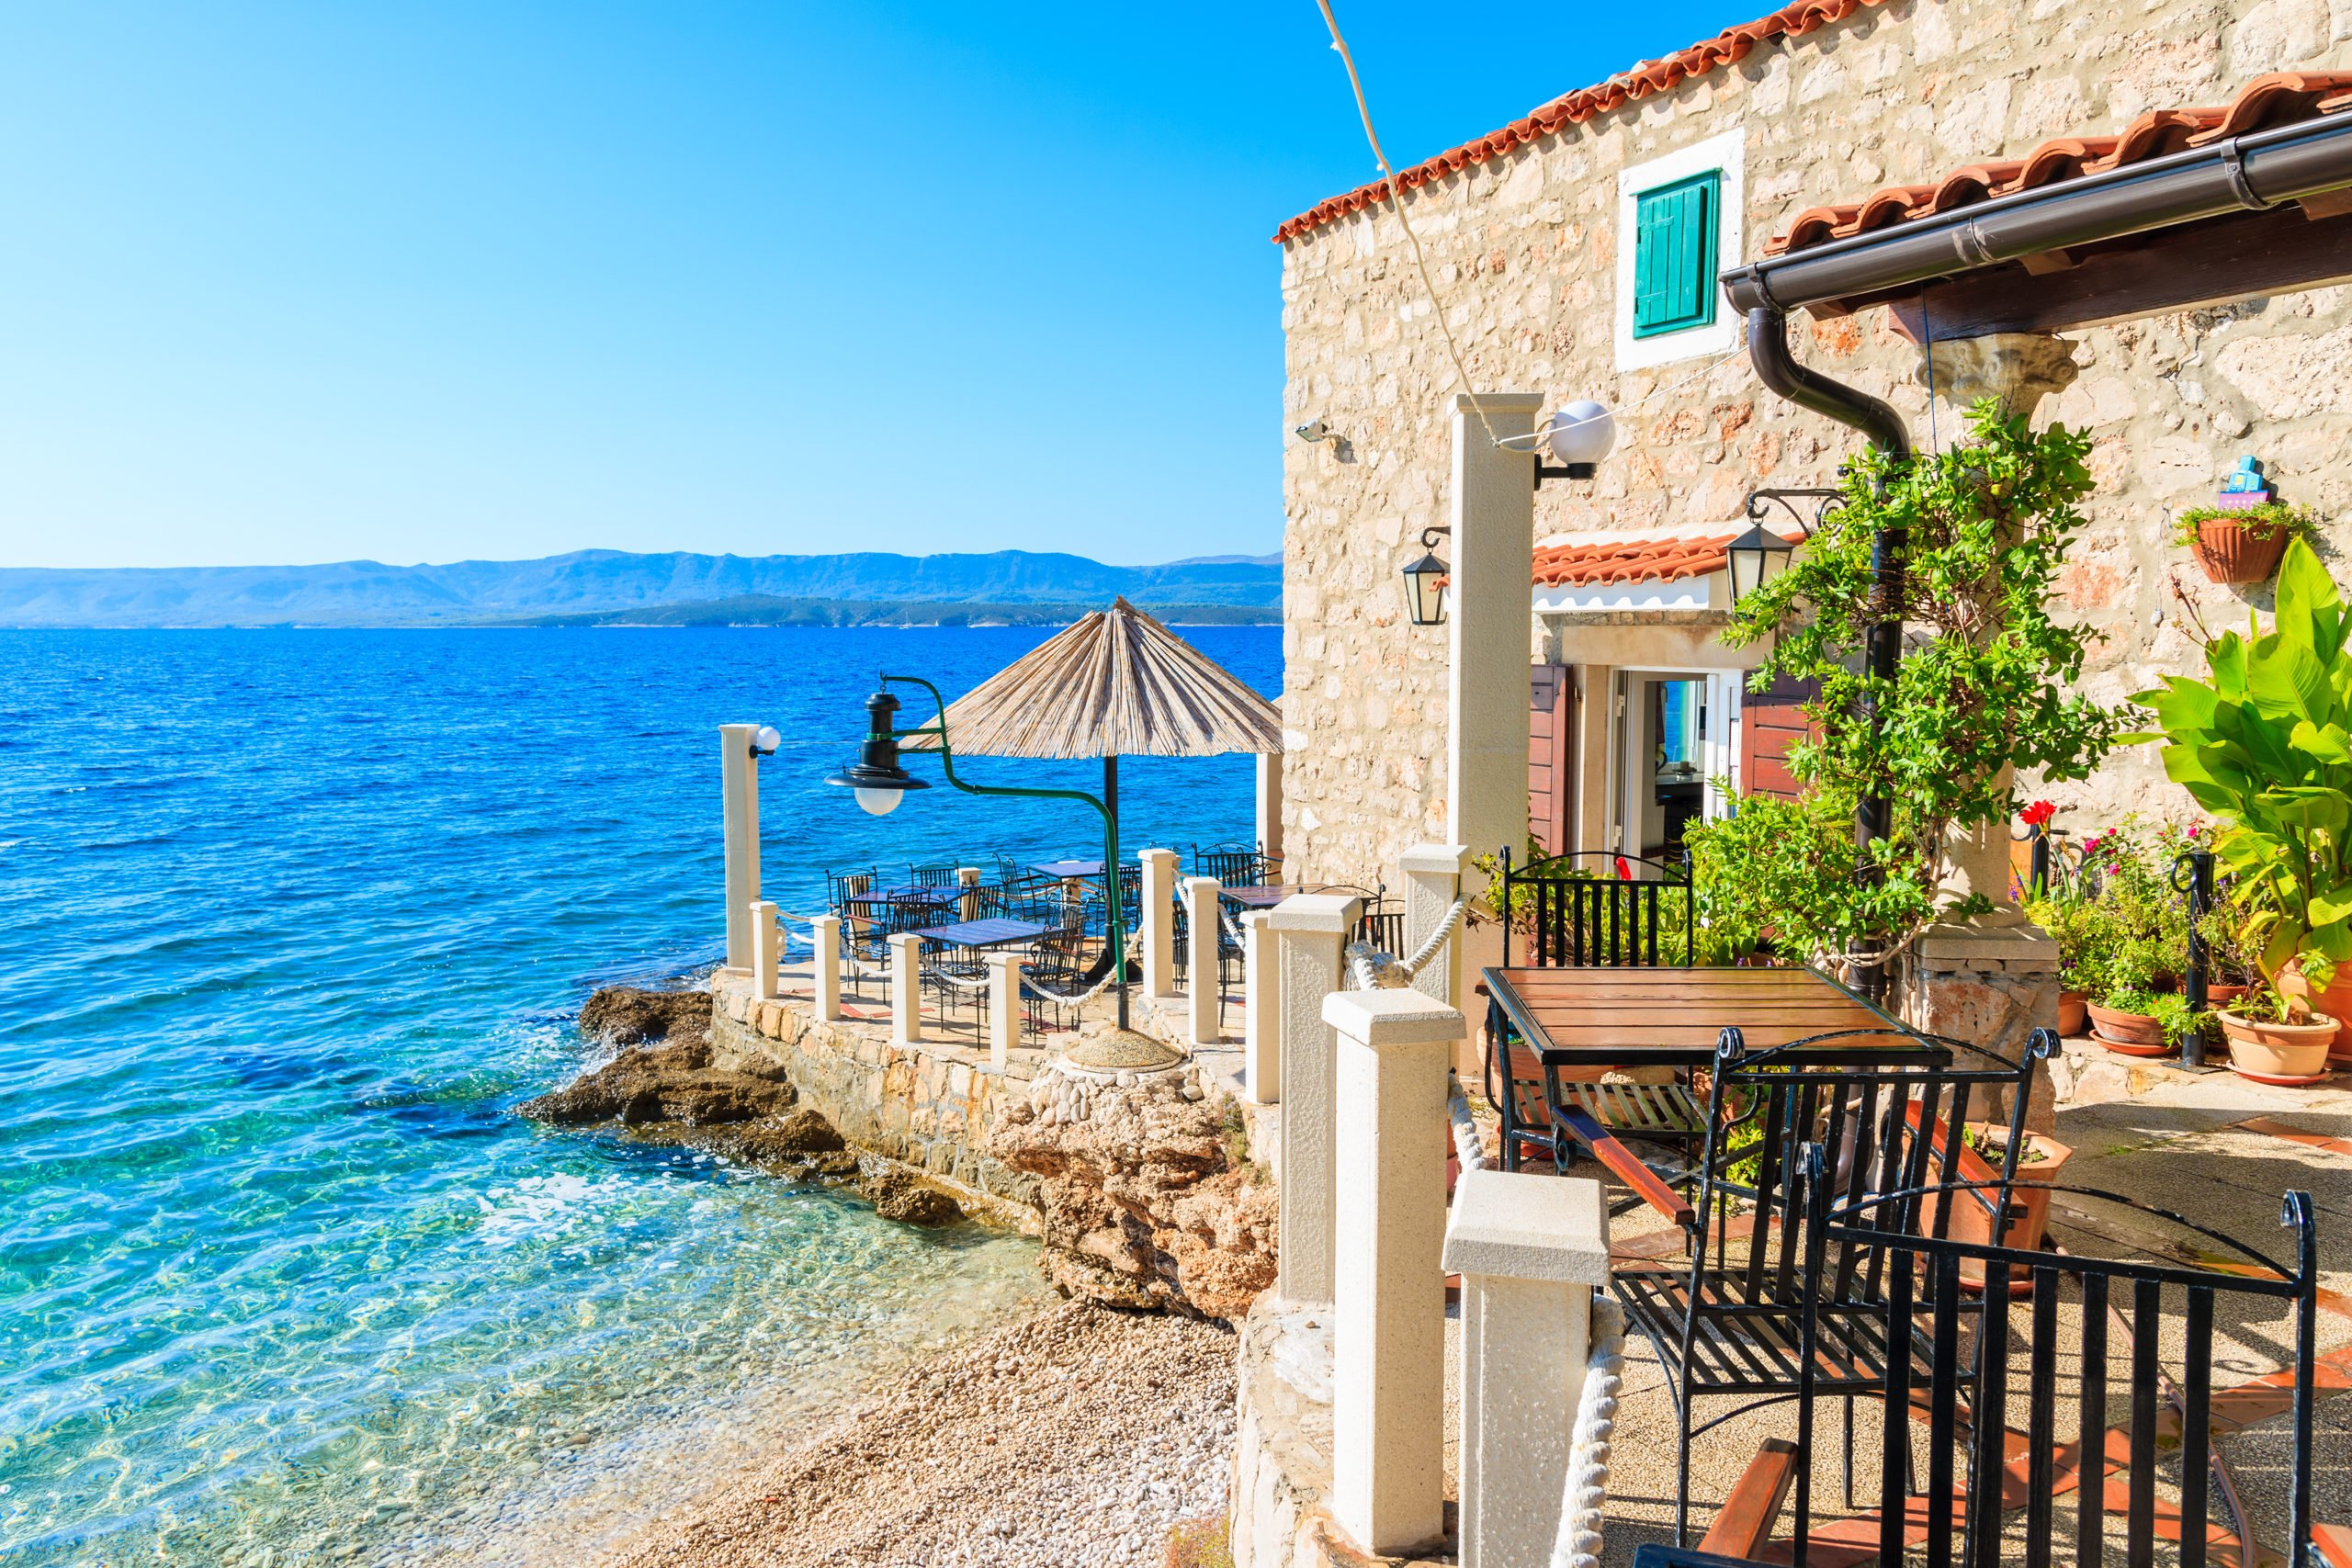 Discover The Picturesque Town Of Bol On The 7 Day Croatian Island Package Tour